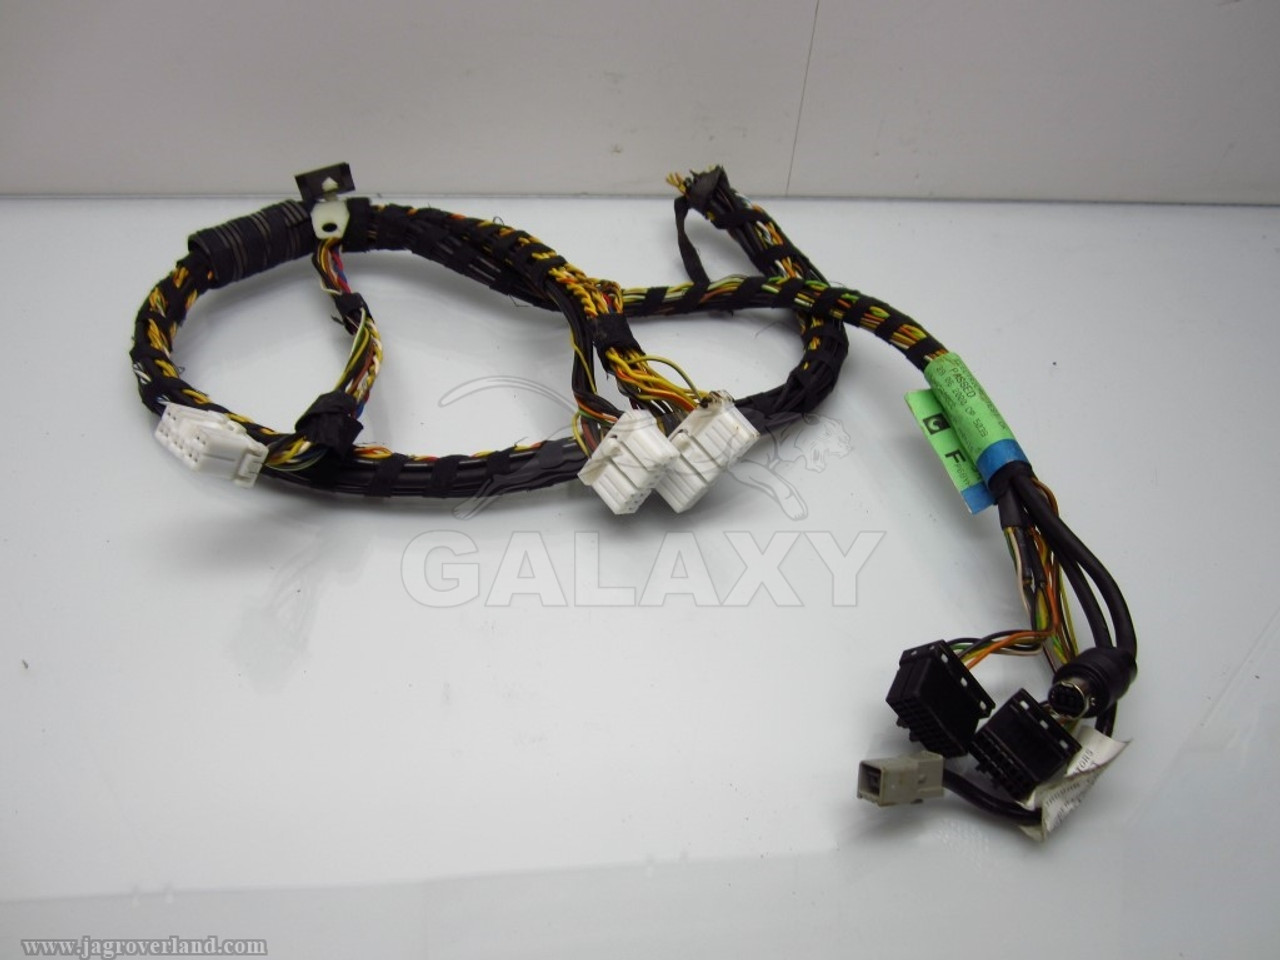 hight resolution of  98 03 xj8 r vdp navigation radio amplifier wiring harness 20 inch lng3650cc